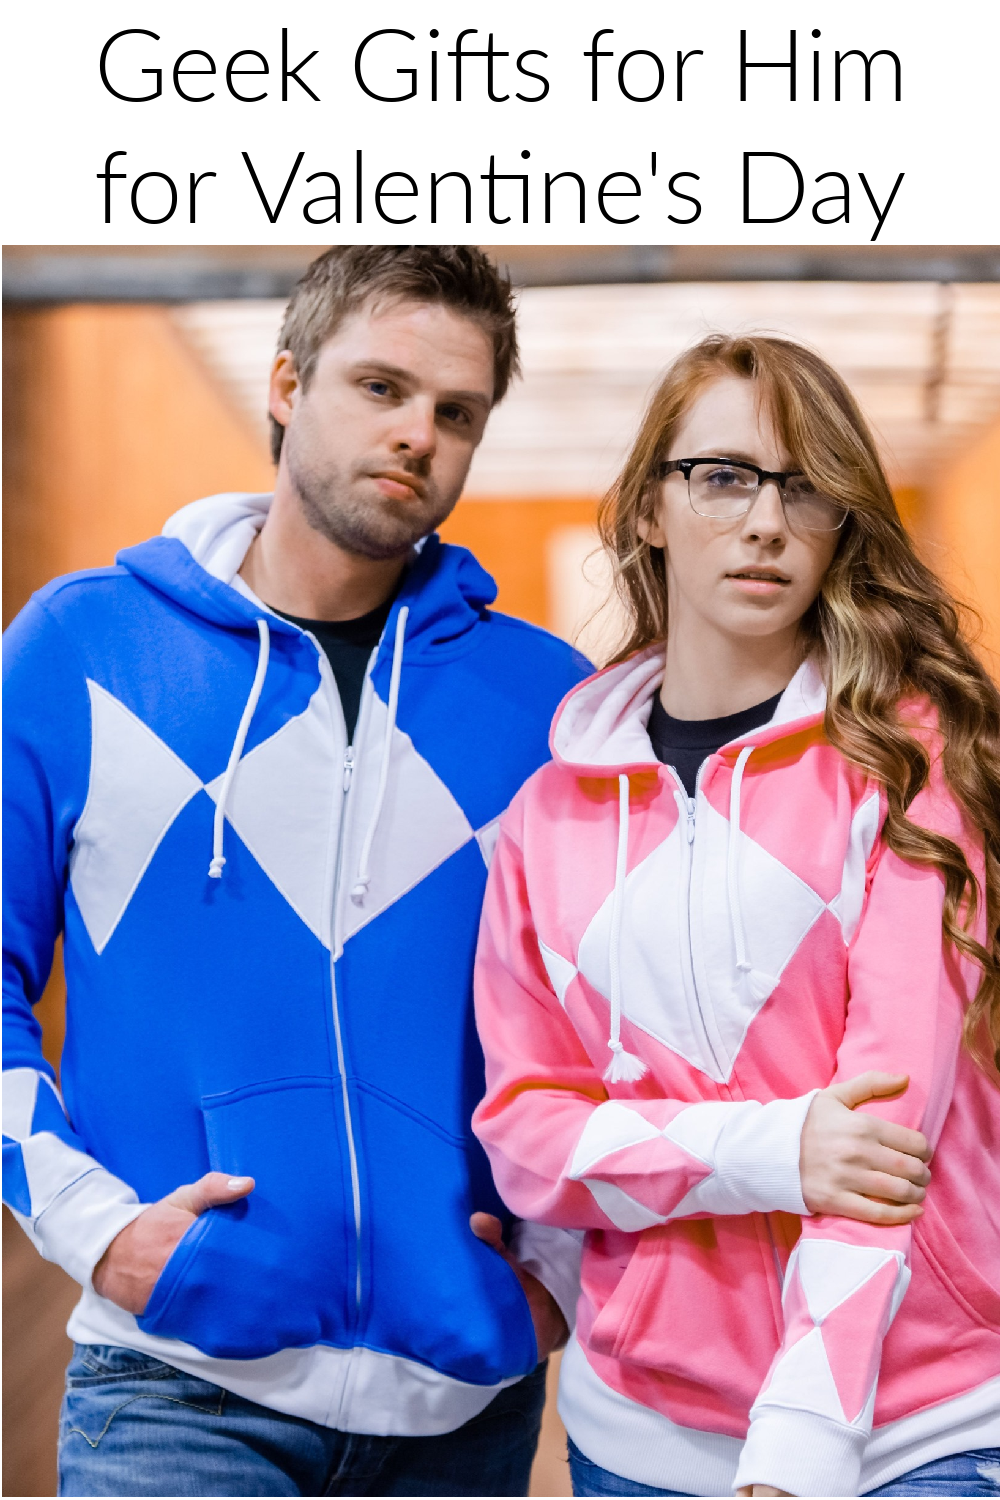 Geek Gifts for Him for Valentine's Day